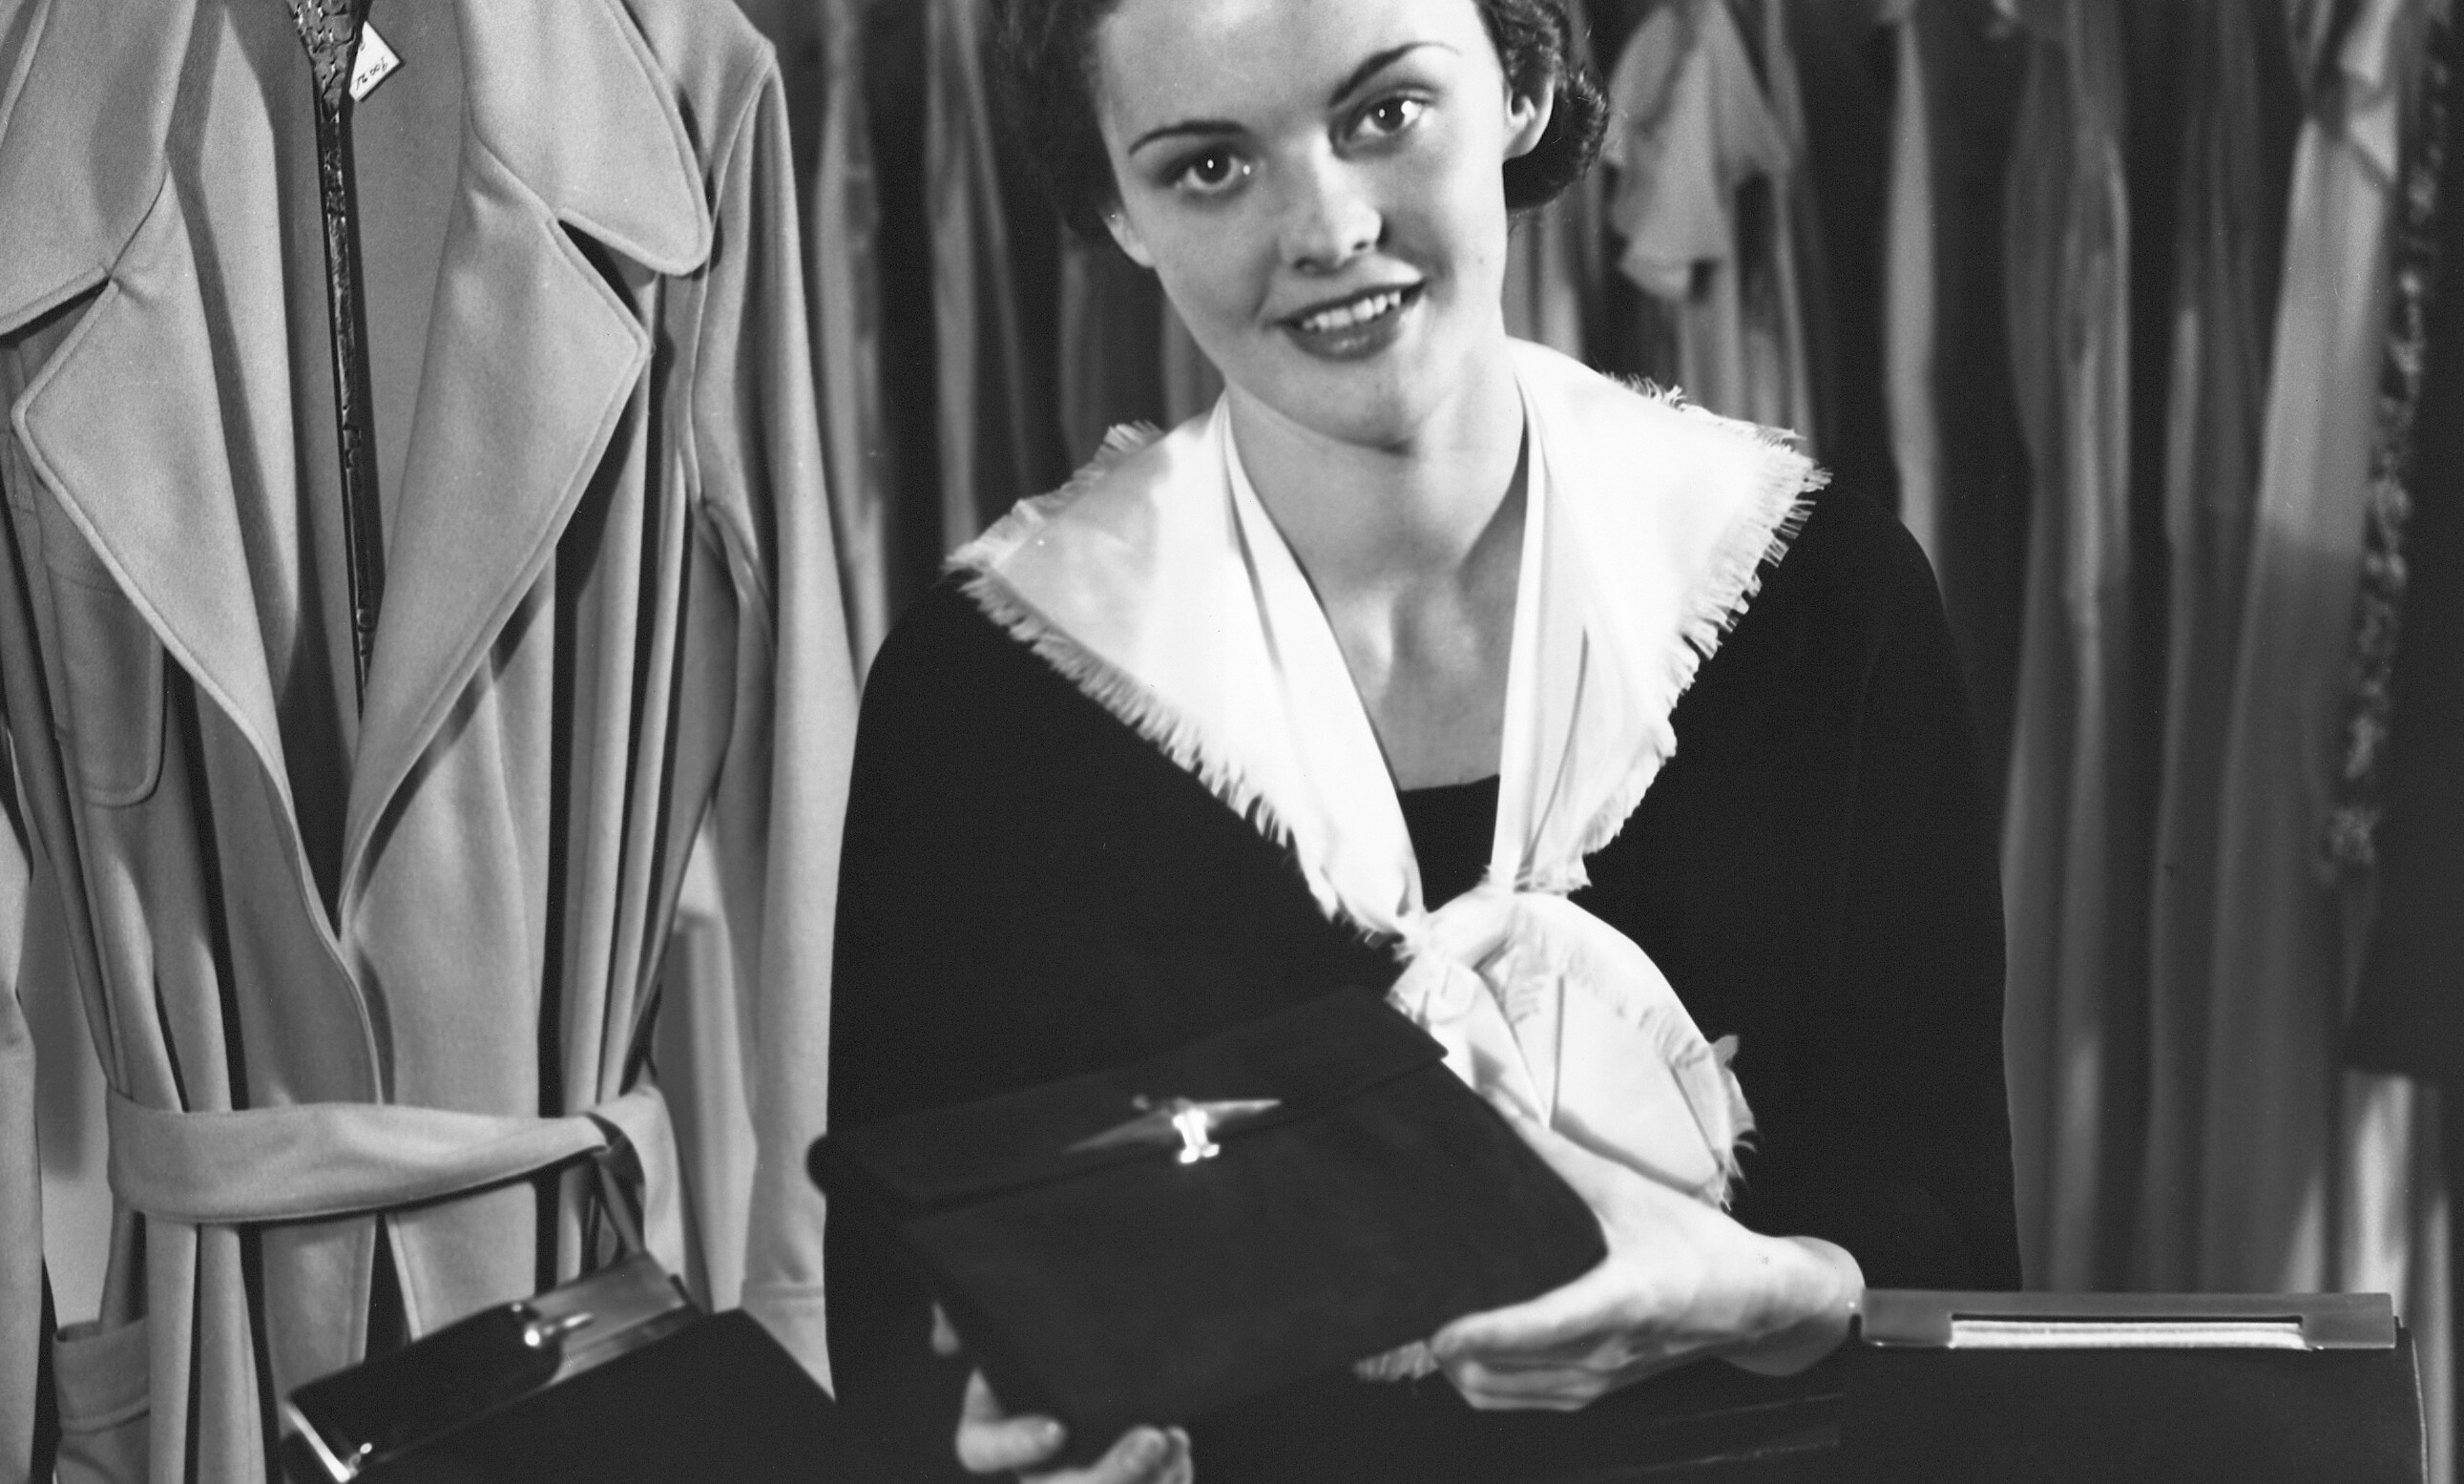 Black and white image of woman selling purses at a store.